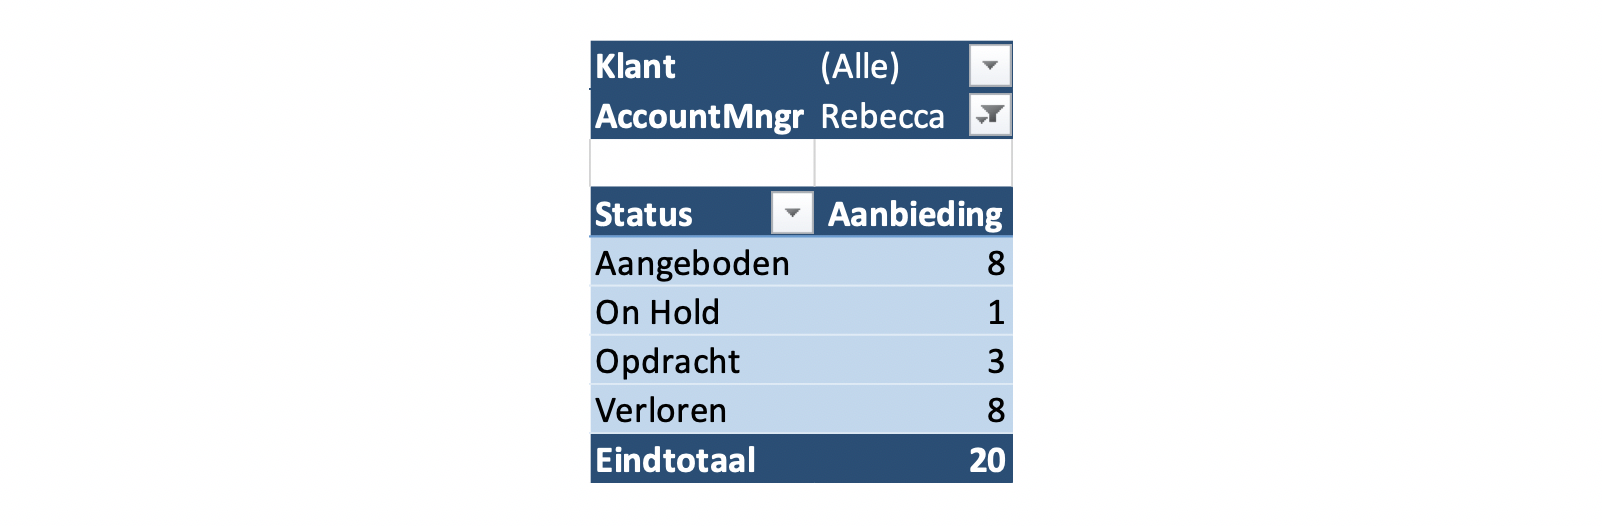 Tabel-05-Accountmanagers